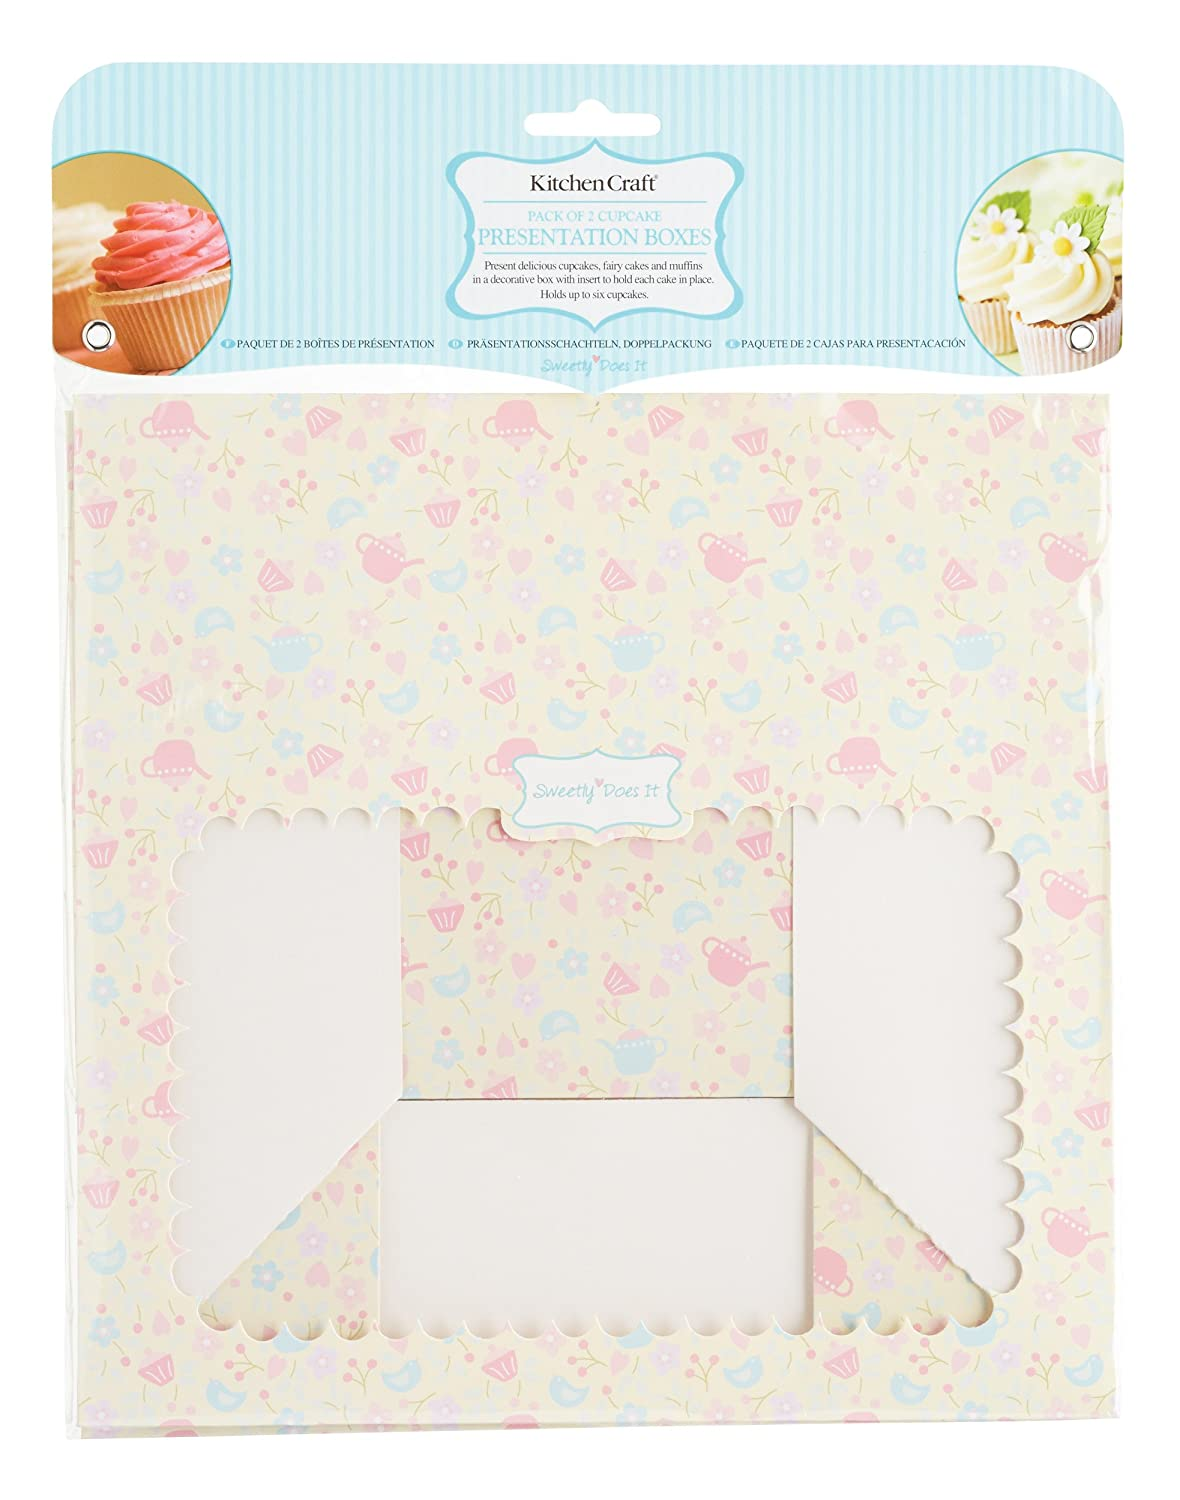 Amazon.com: Pack Of 2 Sweetly Does It Cupcake Boxes For 6 Cupcakes: Kitchen & Dining